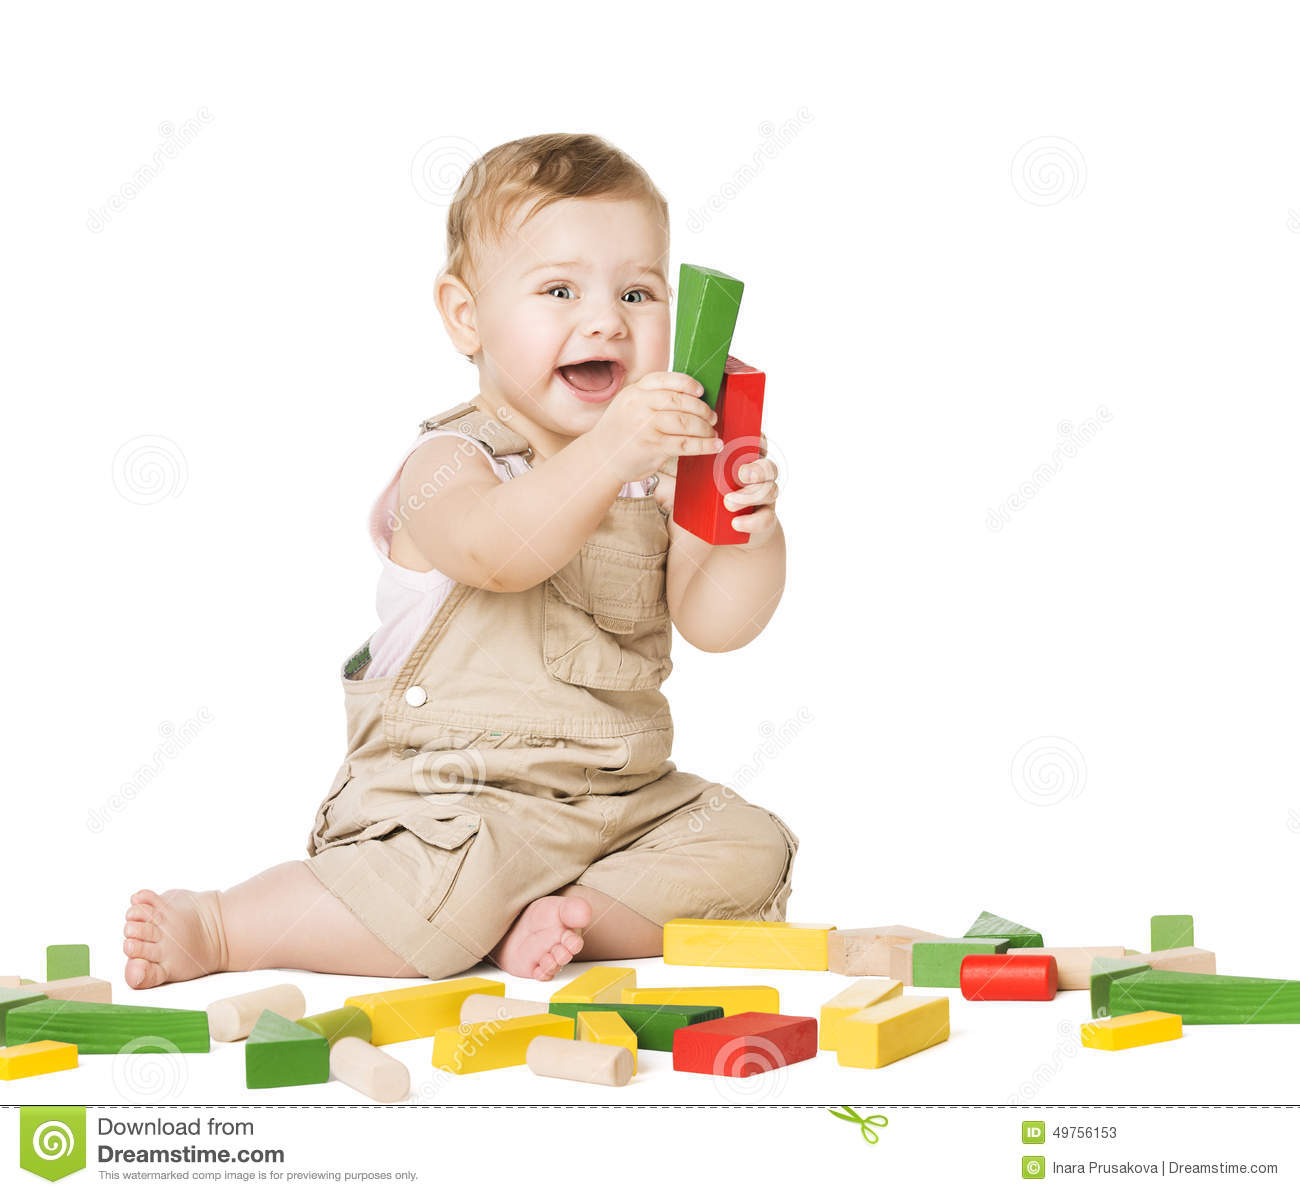 Child playing toys blocks children development concept for Happy playsets